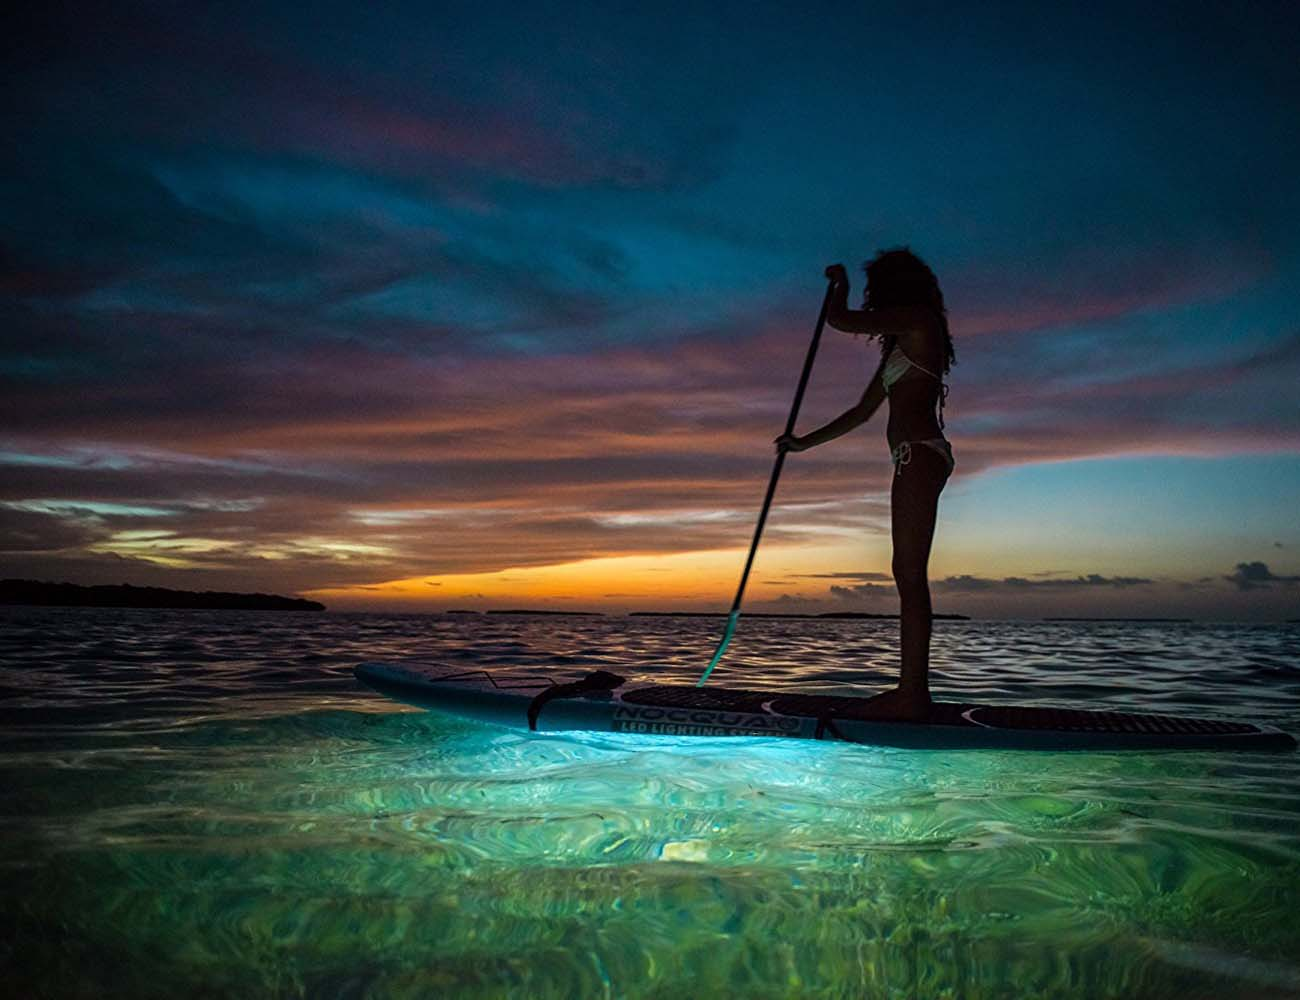 NOCQUA Sport Edition – Underwater Light Systems for Paddlers